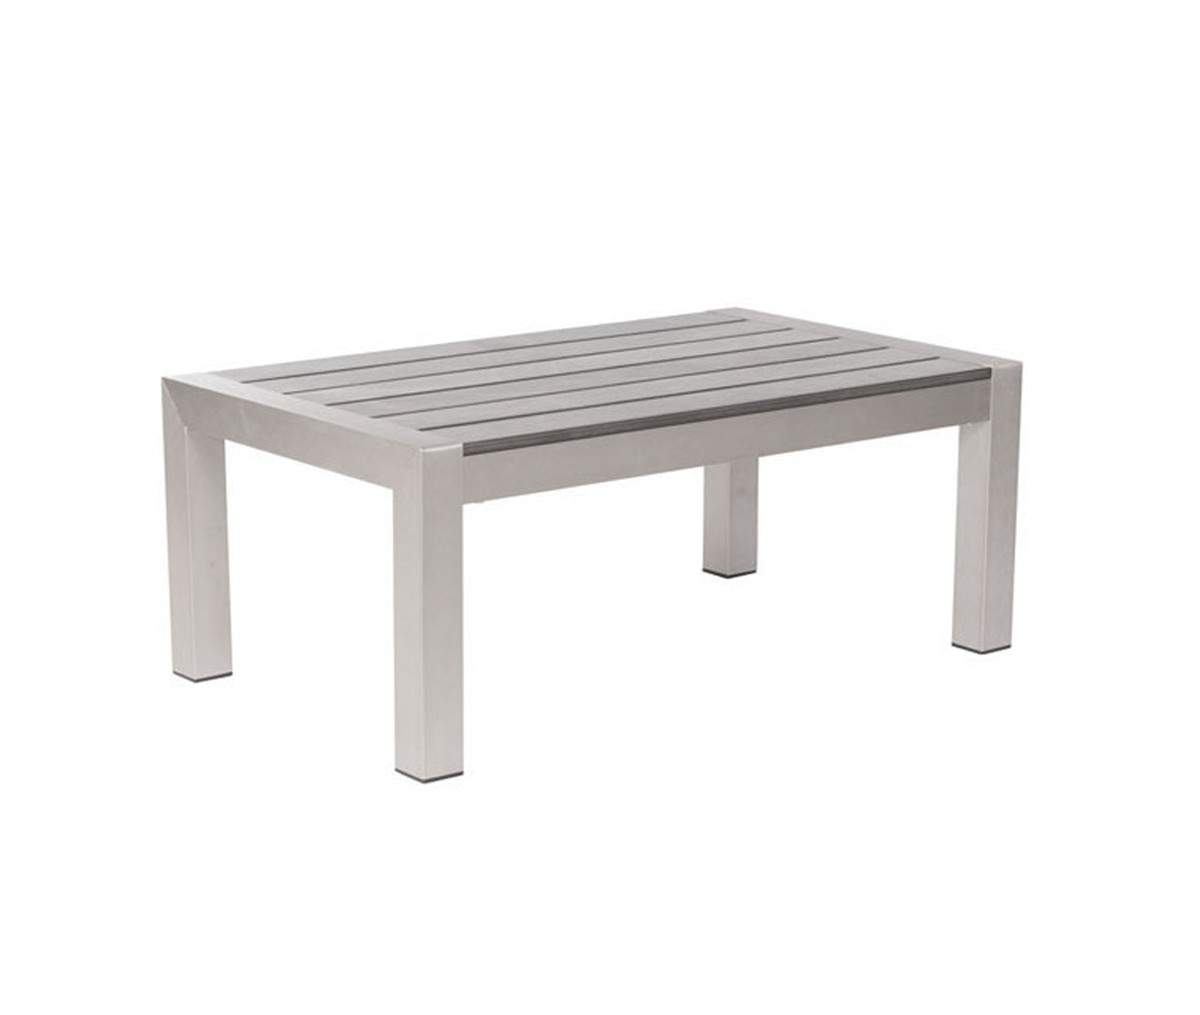 Zuo Modern Cosmopolitan Coffee Table - Brushed Aluminum